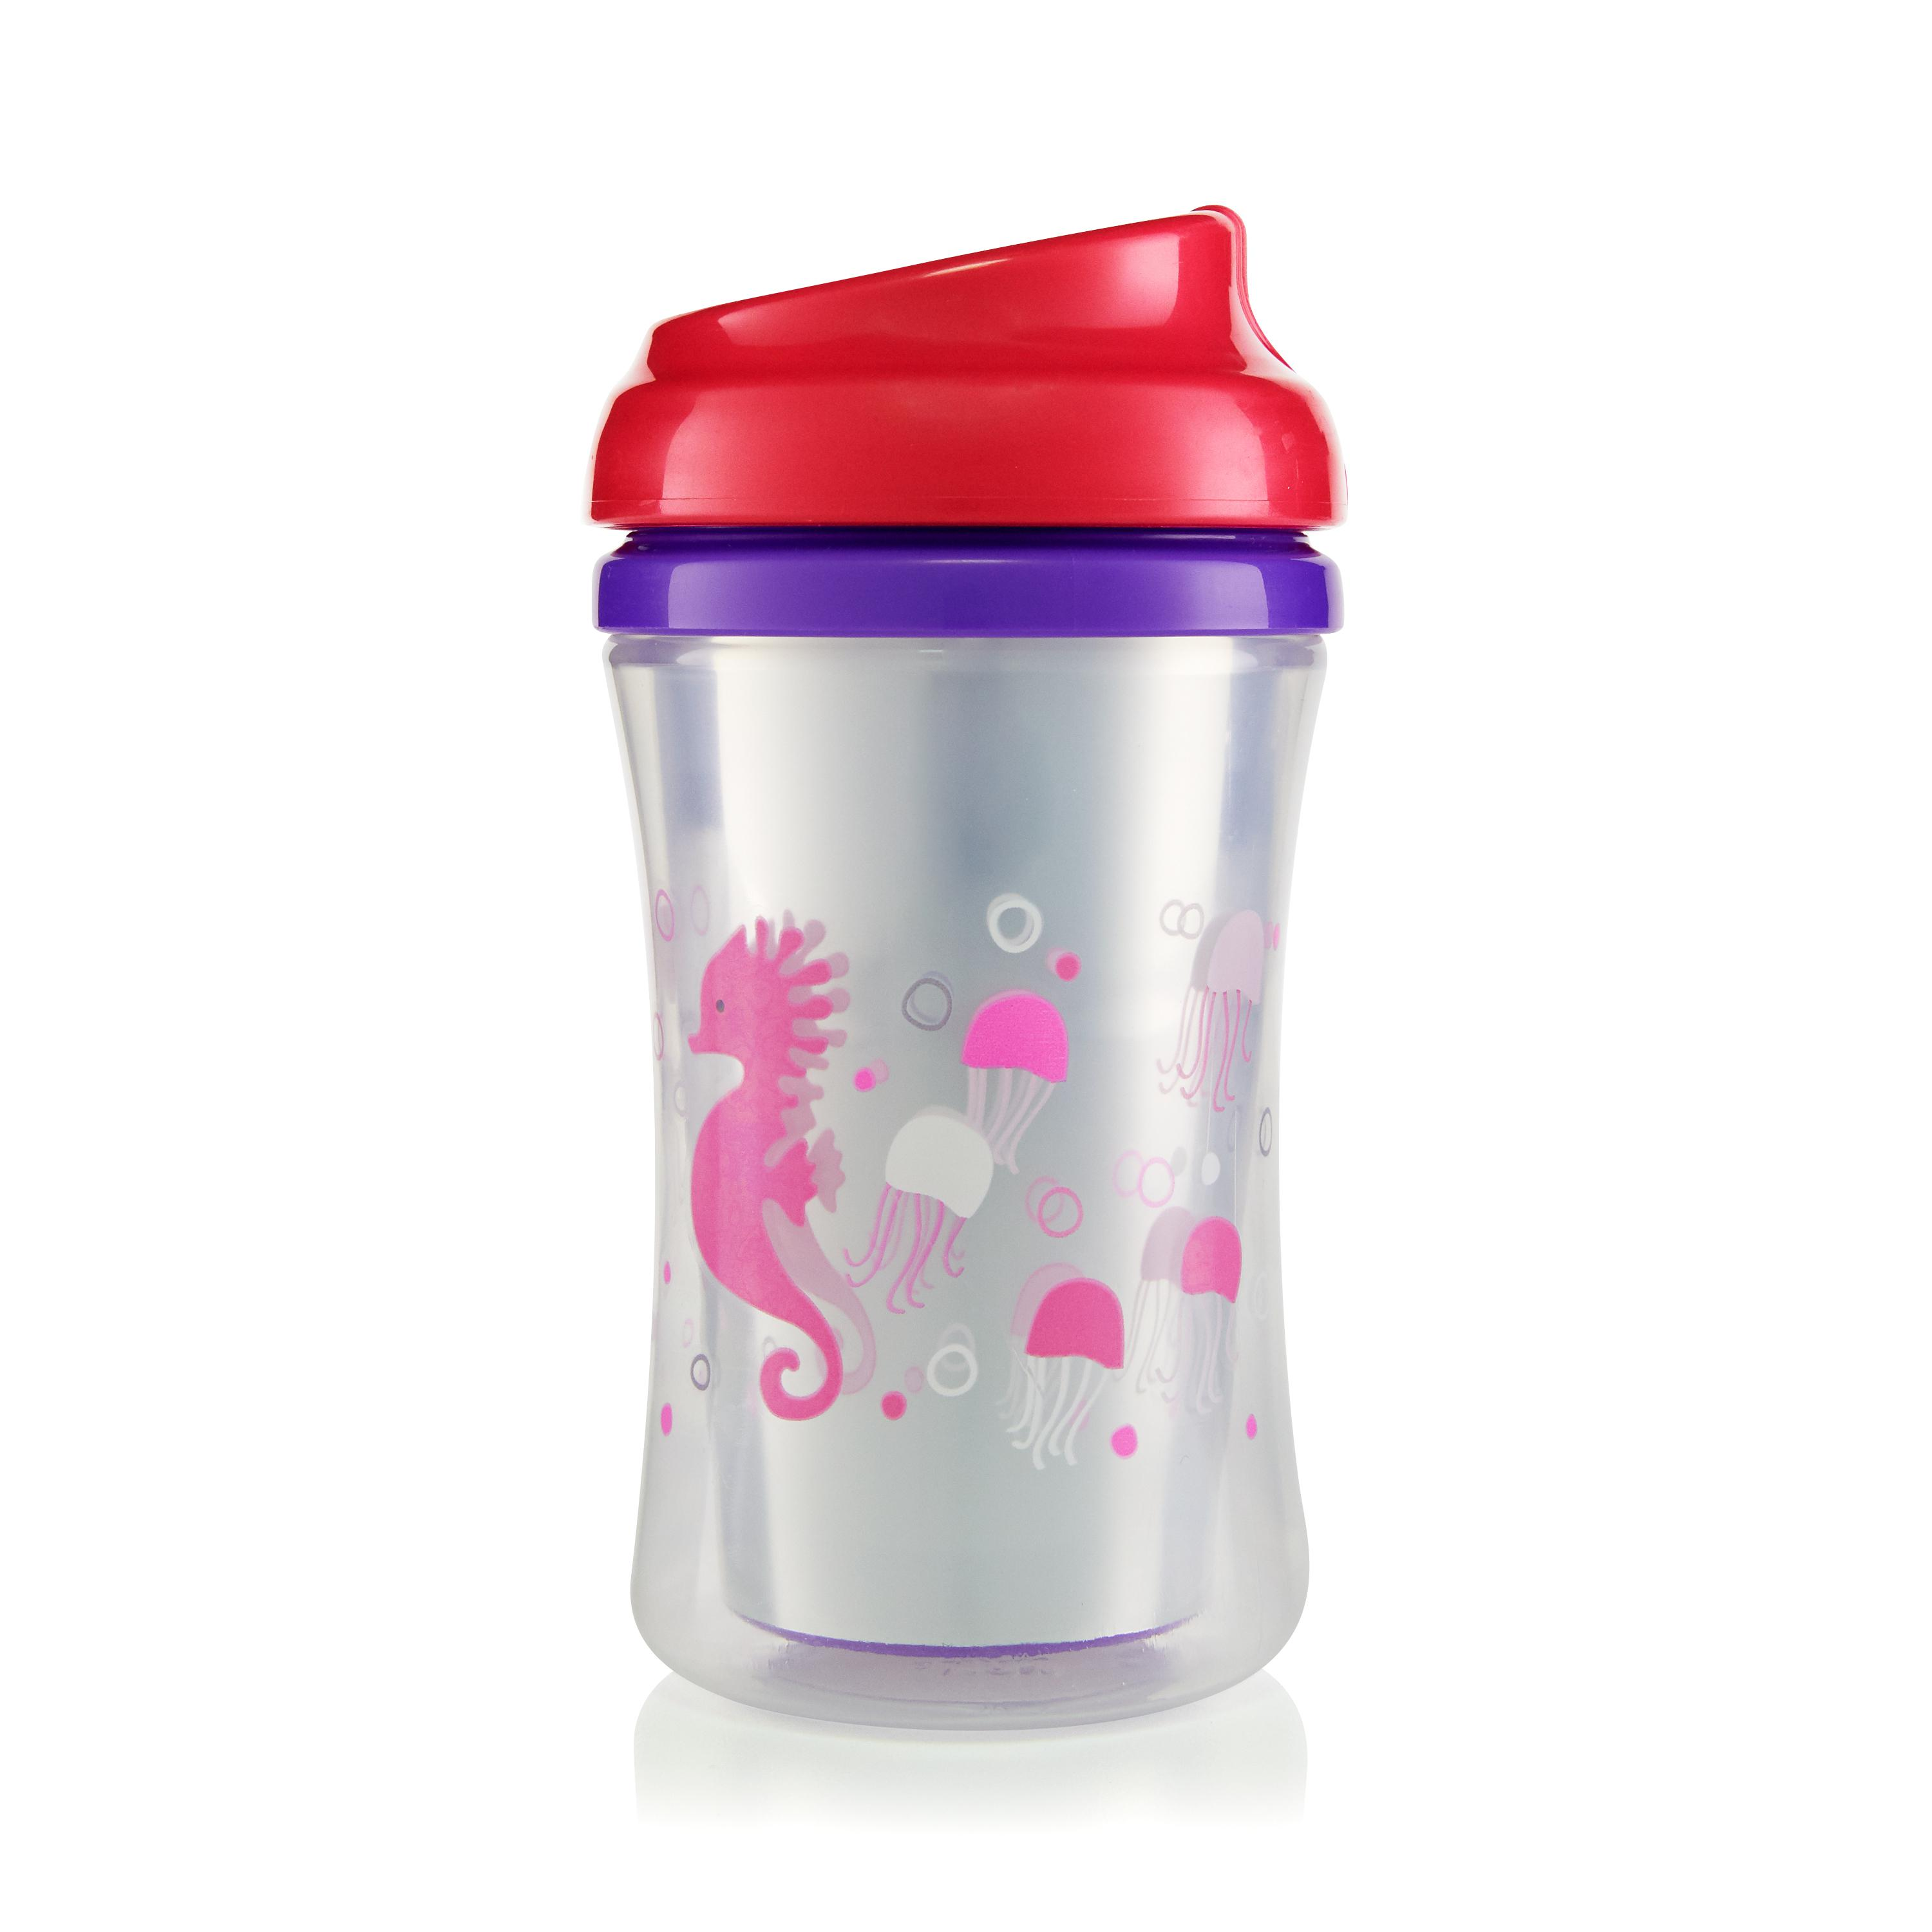 First Essentials by NUK™ Insulated Cup-like Rim Sippy Cup, 9 oz., 2-Pack Product Image 5 of 6